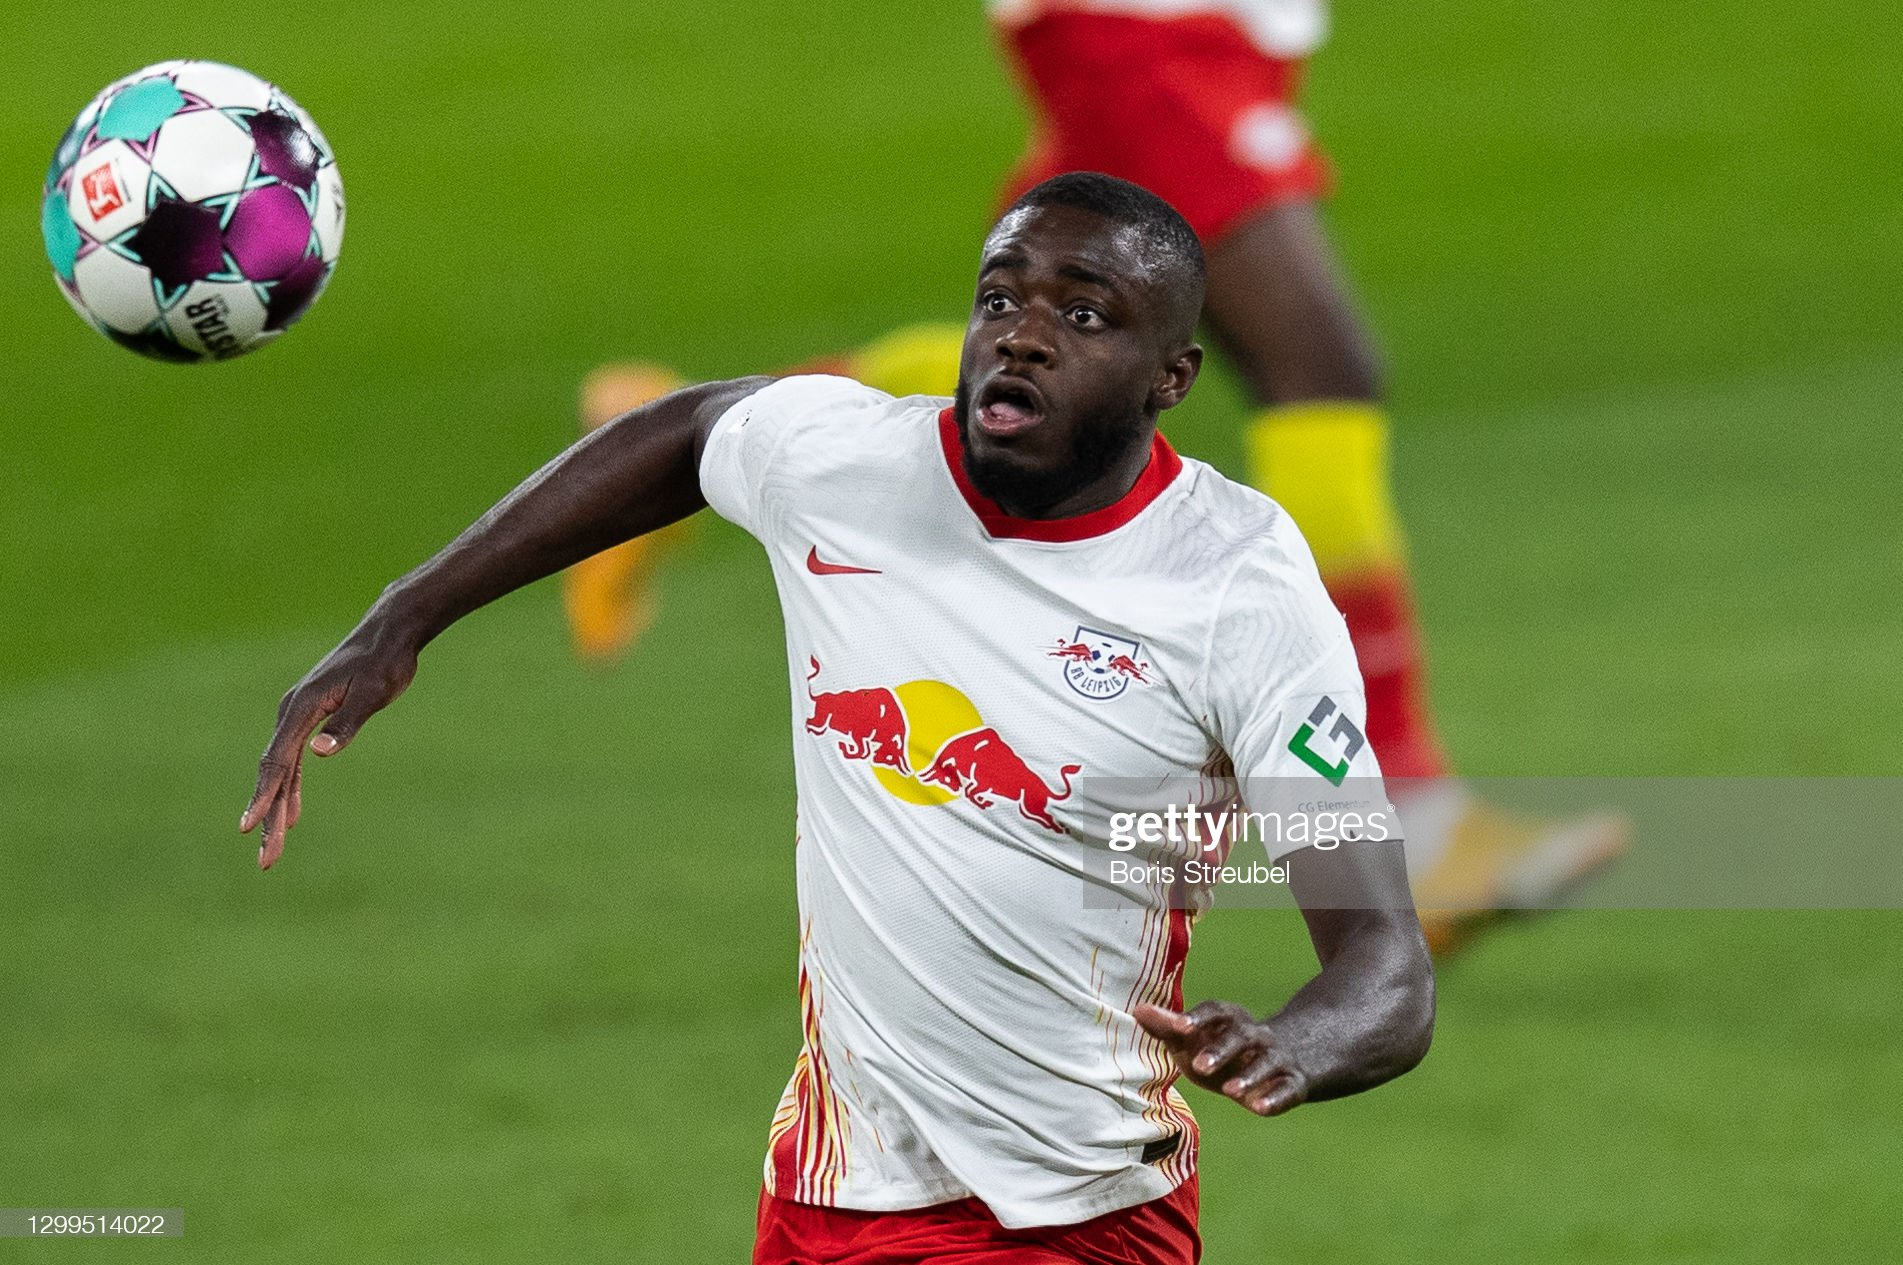 RB Leipzig v Bayer 04 Leverkusen - Bundesliga : News Photo